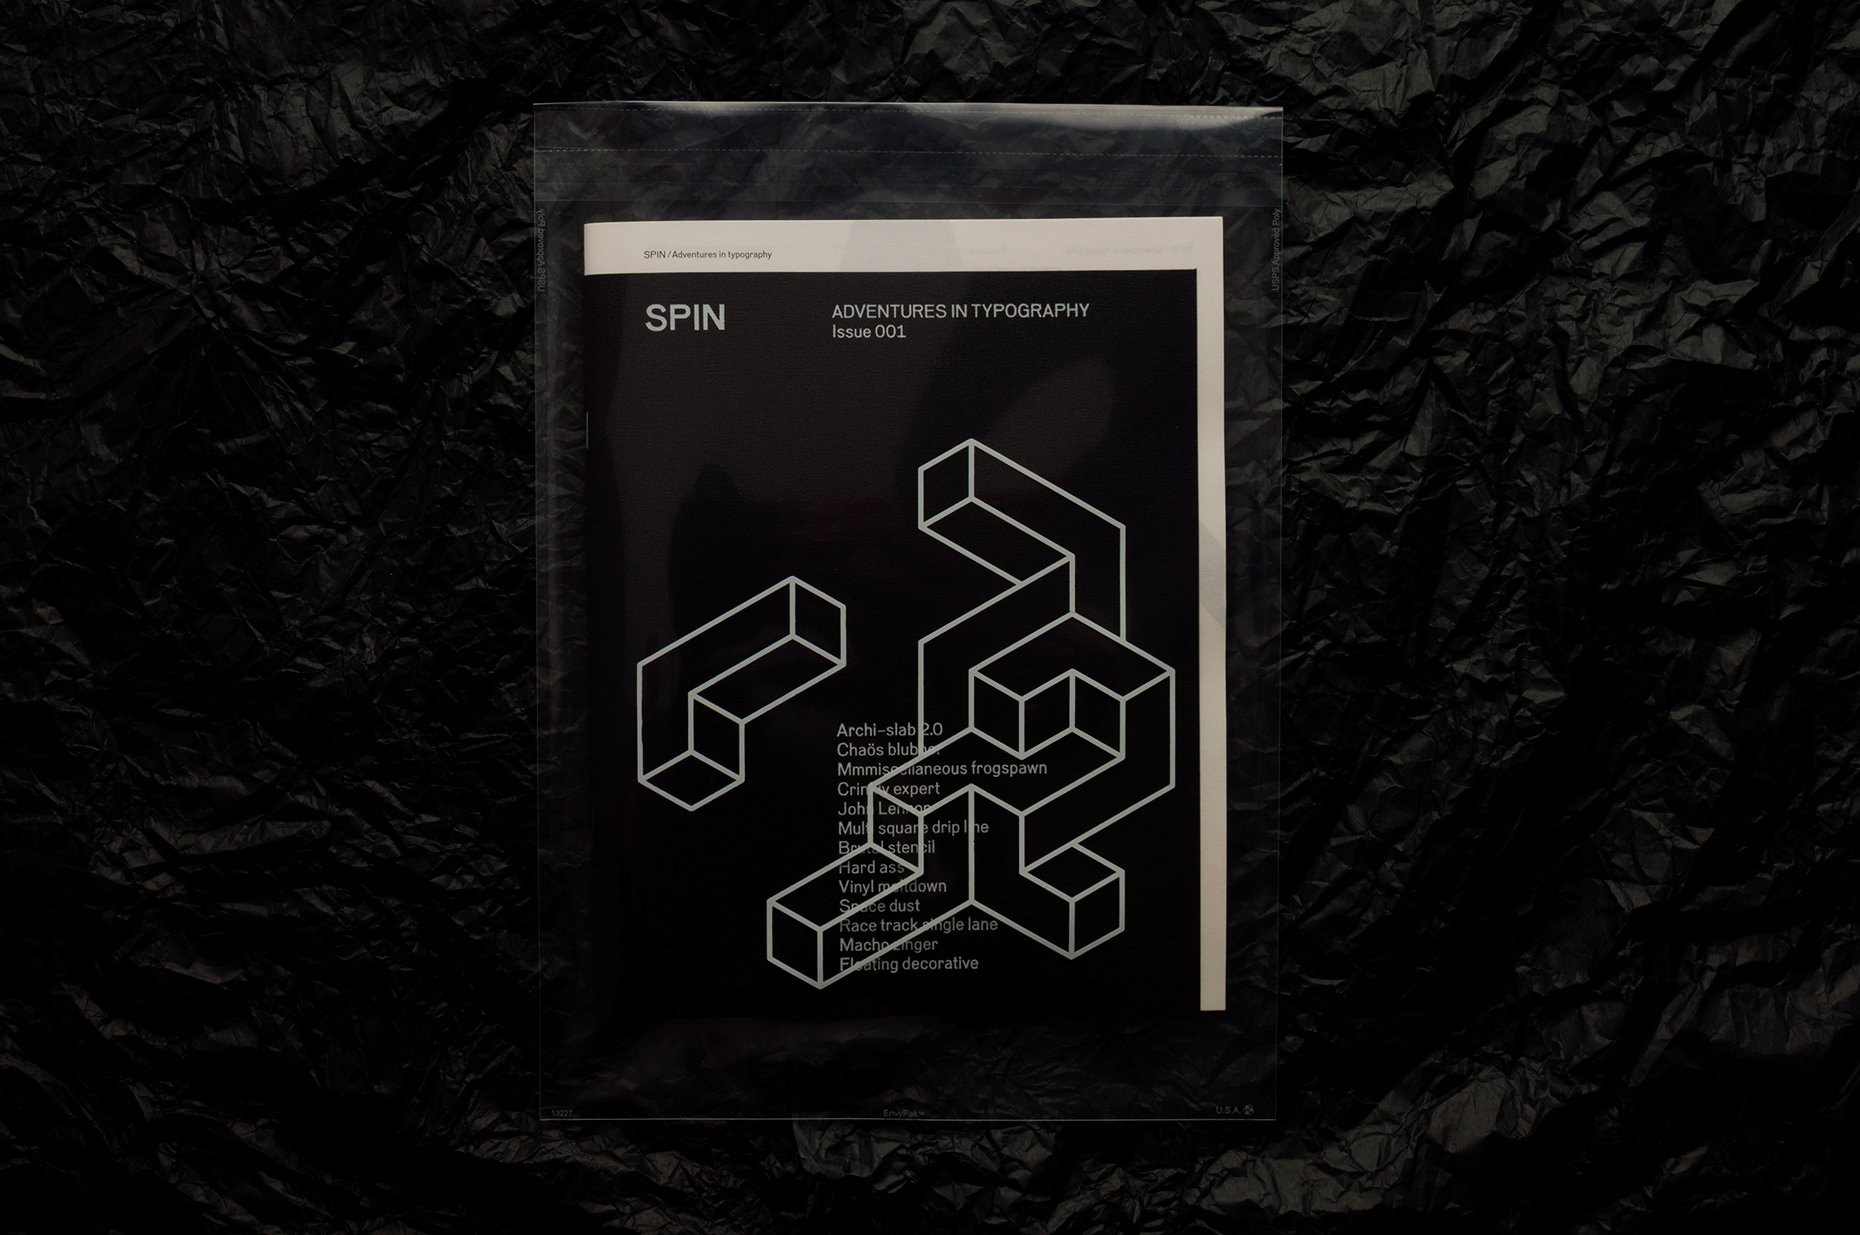 SPIN MAG BLACK COVER SLEEVE